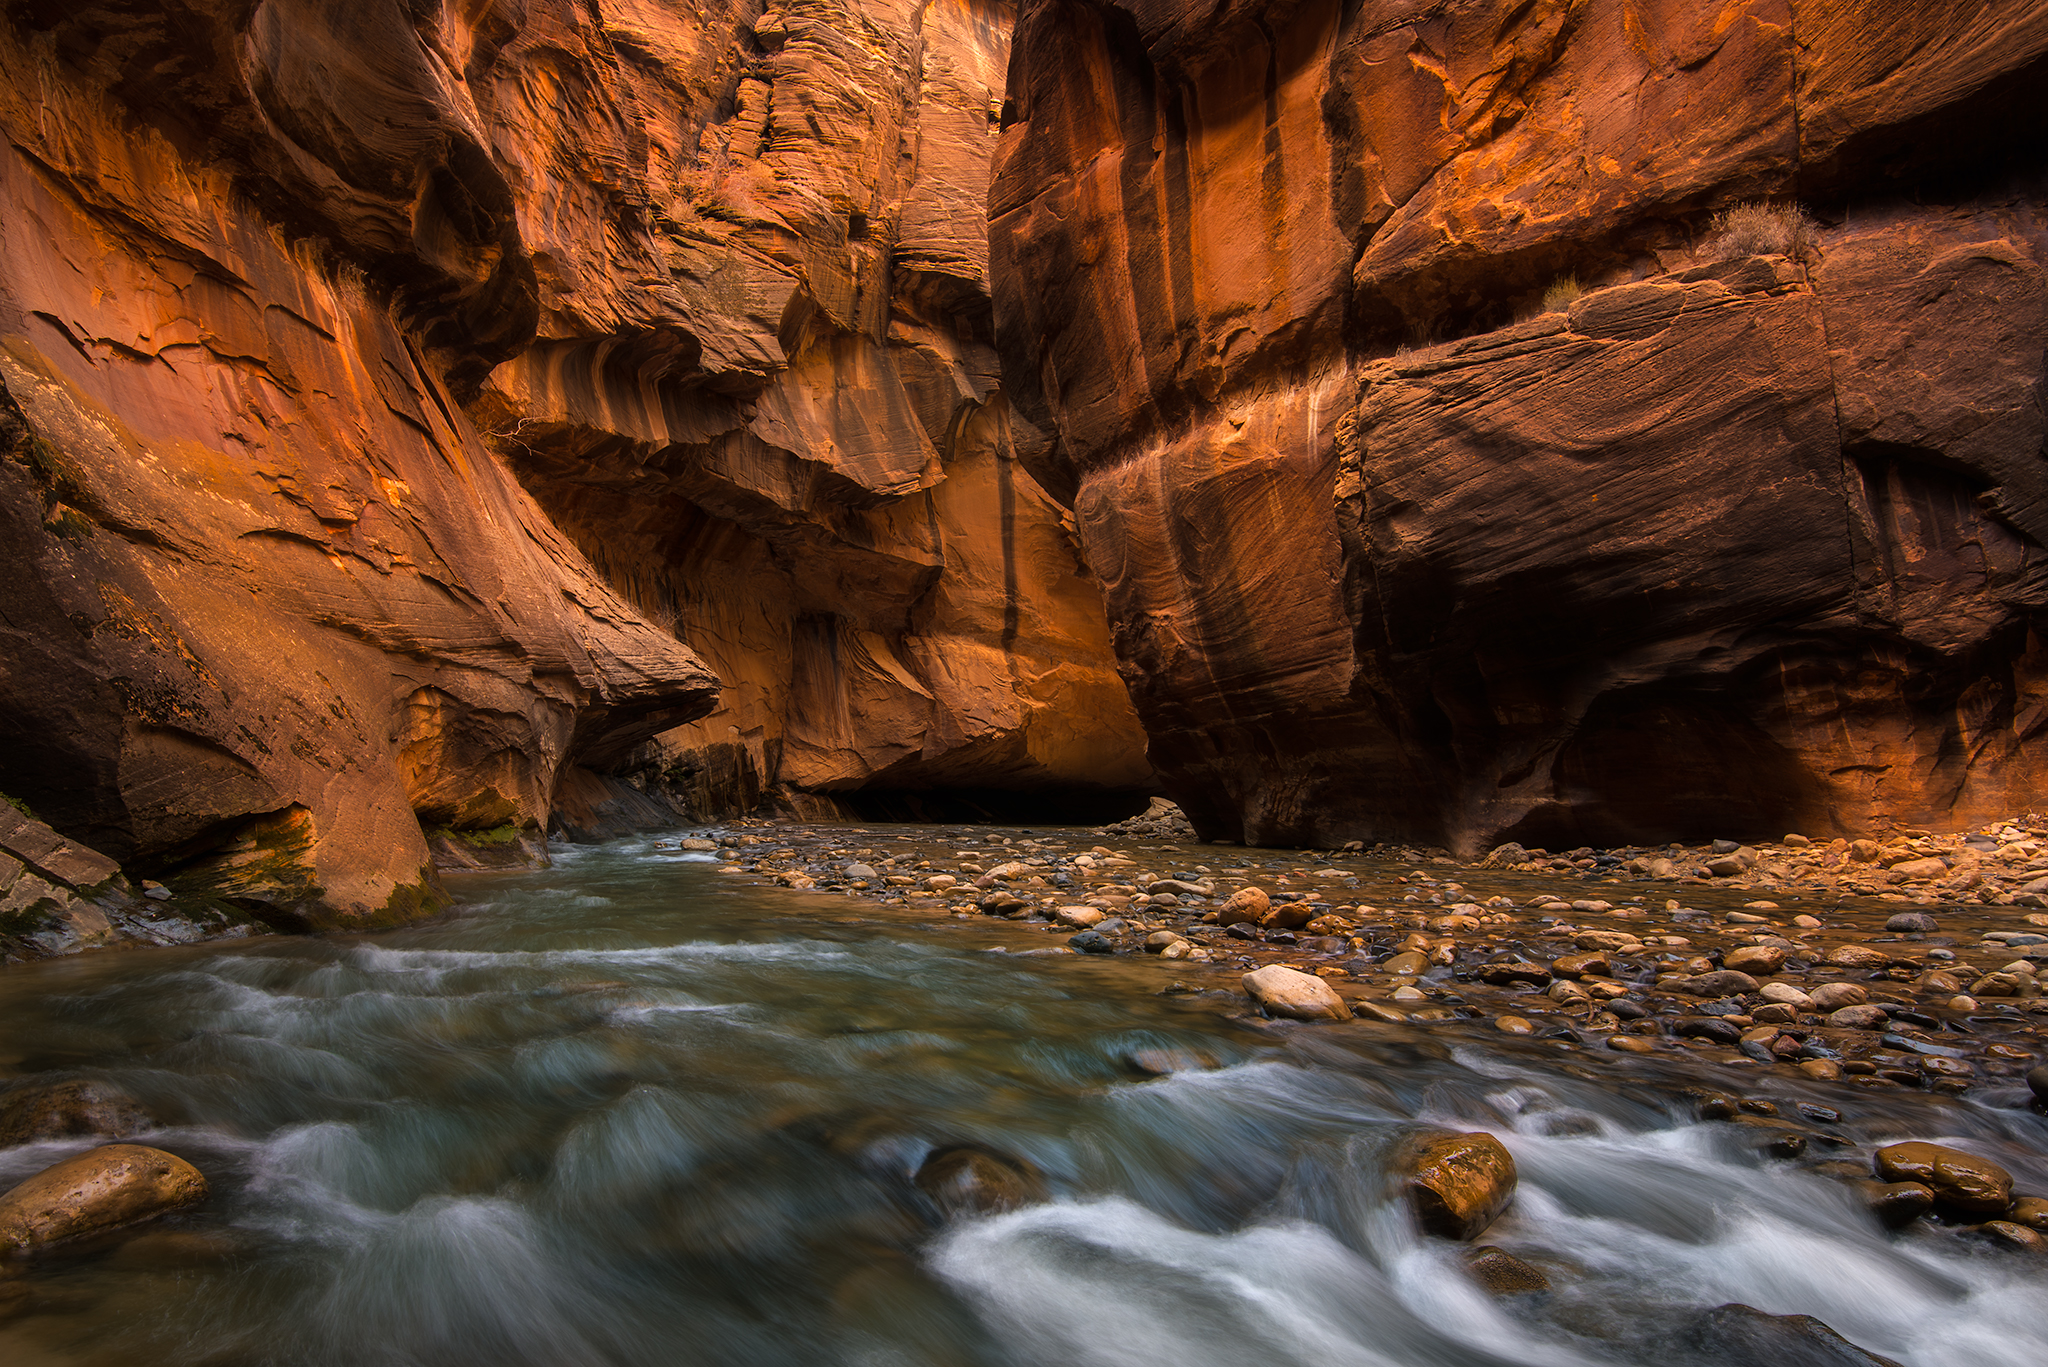 Yep - We also went to the narrows. Fun story - Aybars dropped his D800 in the water shortly after this. It still lives and take pictures of cats (he moved to Boston) to this day!